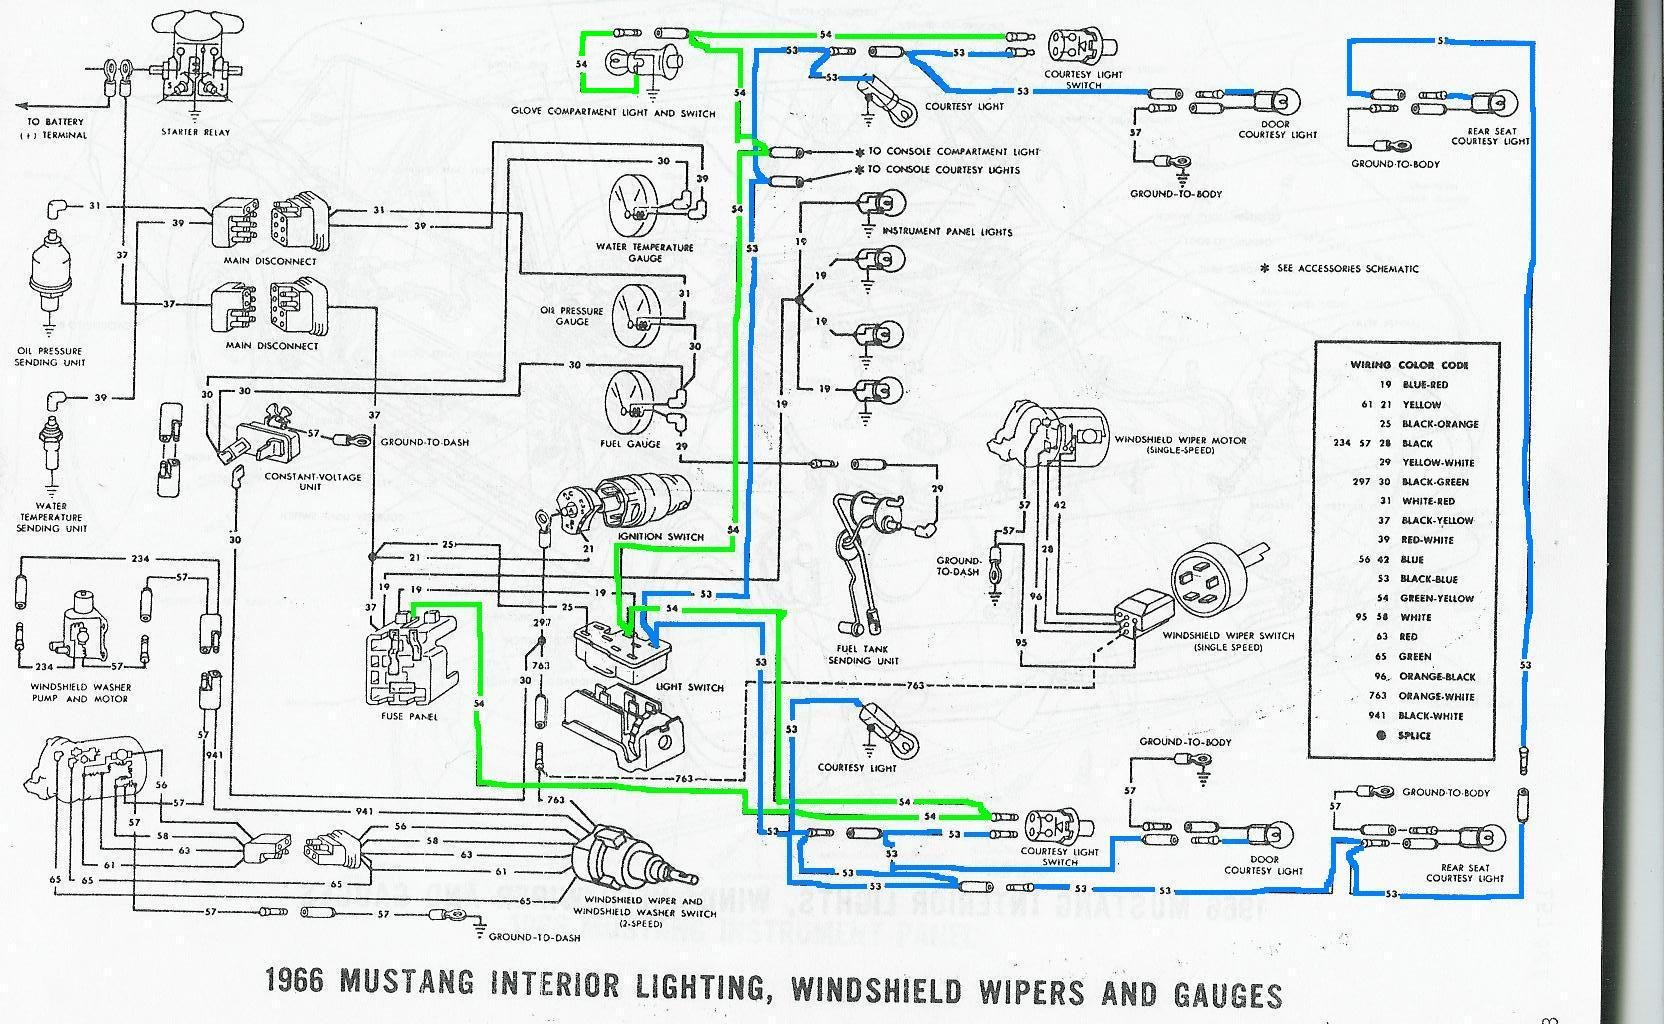 88 mustang headlight wiring diagram  | 736 x 977